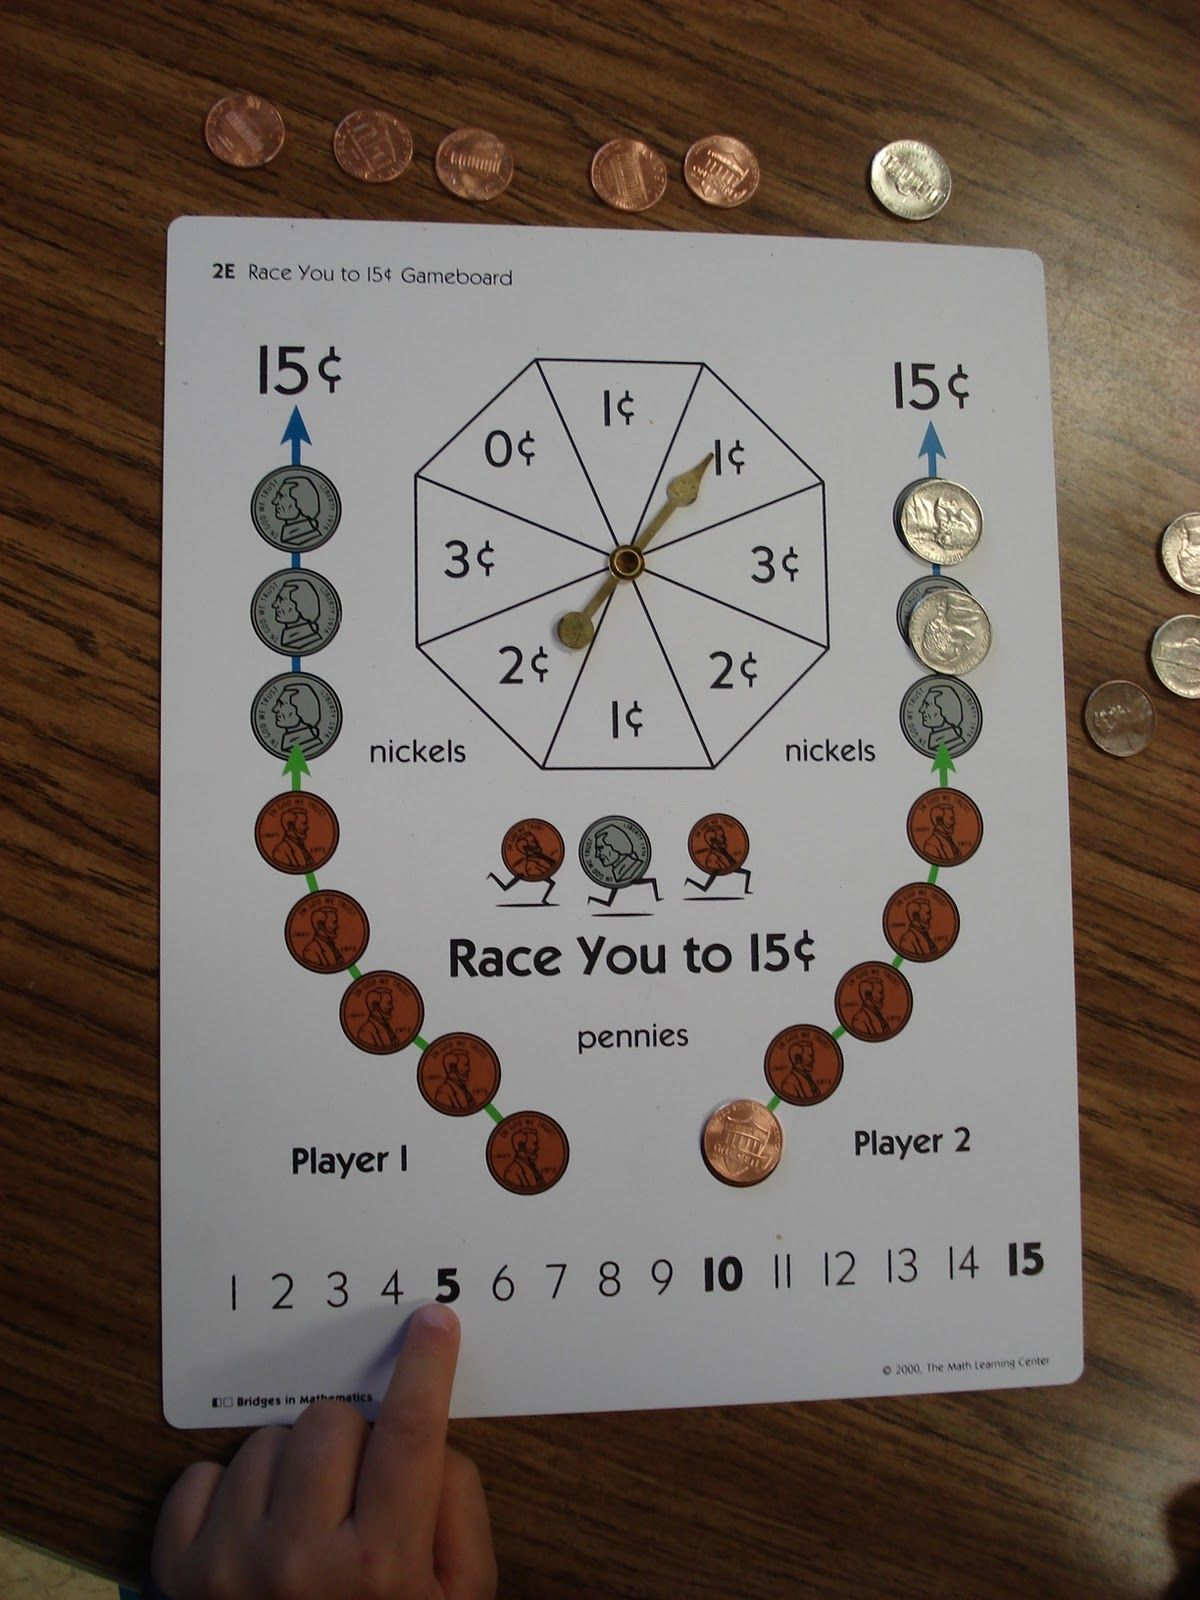 Cool Game For Kids Race You To 15 Learning Coins